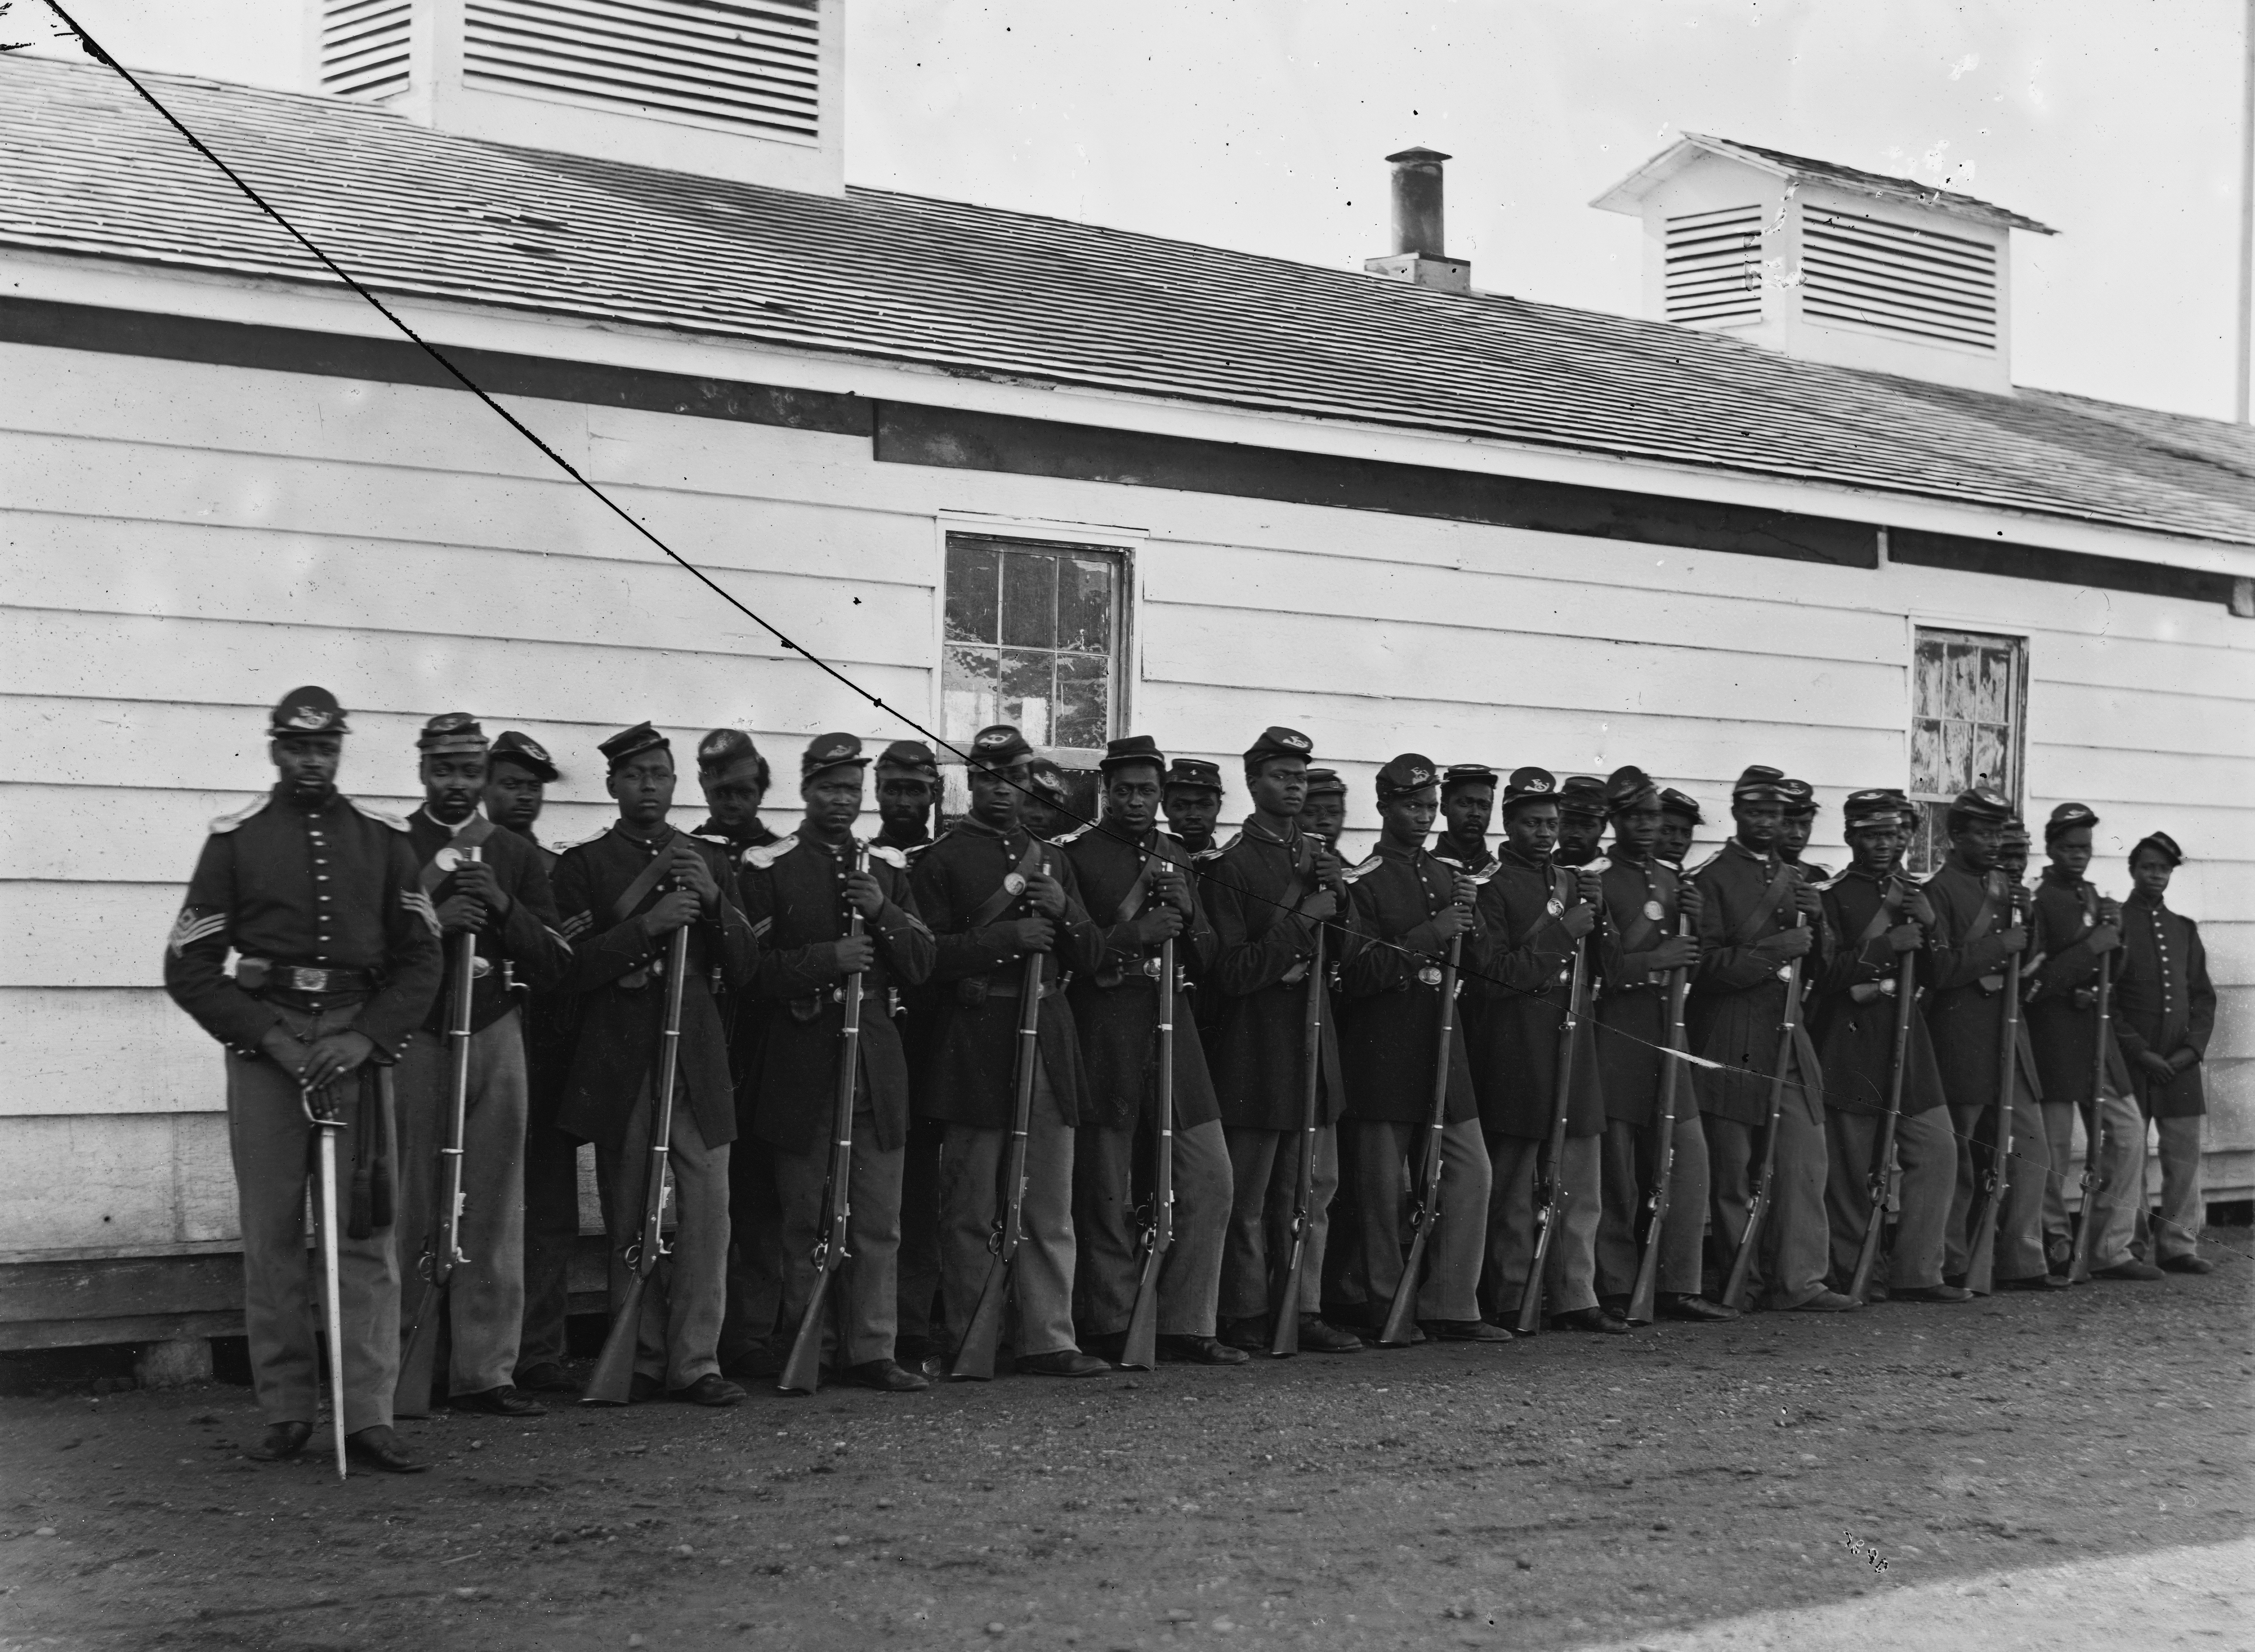 4th United States Colored Infantry. Photo credit: Wikimedia Commons